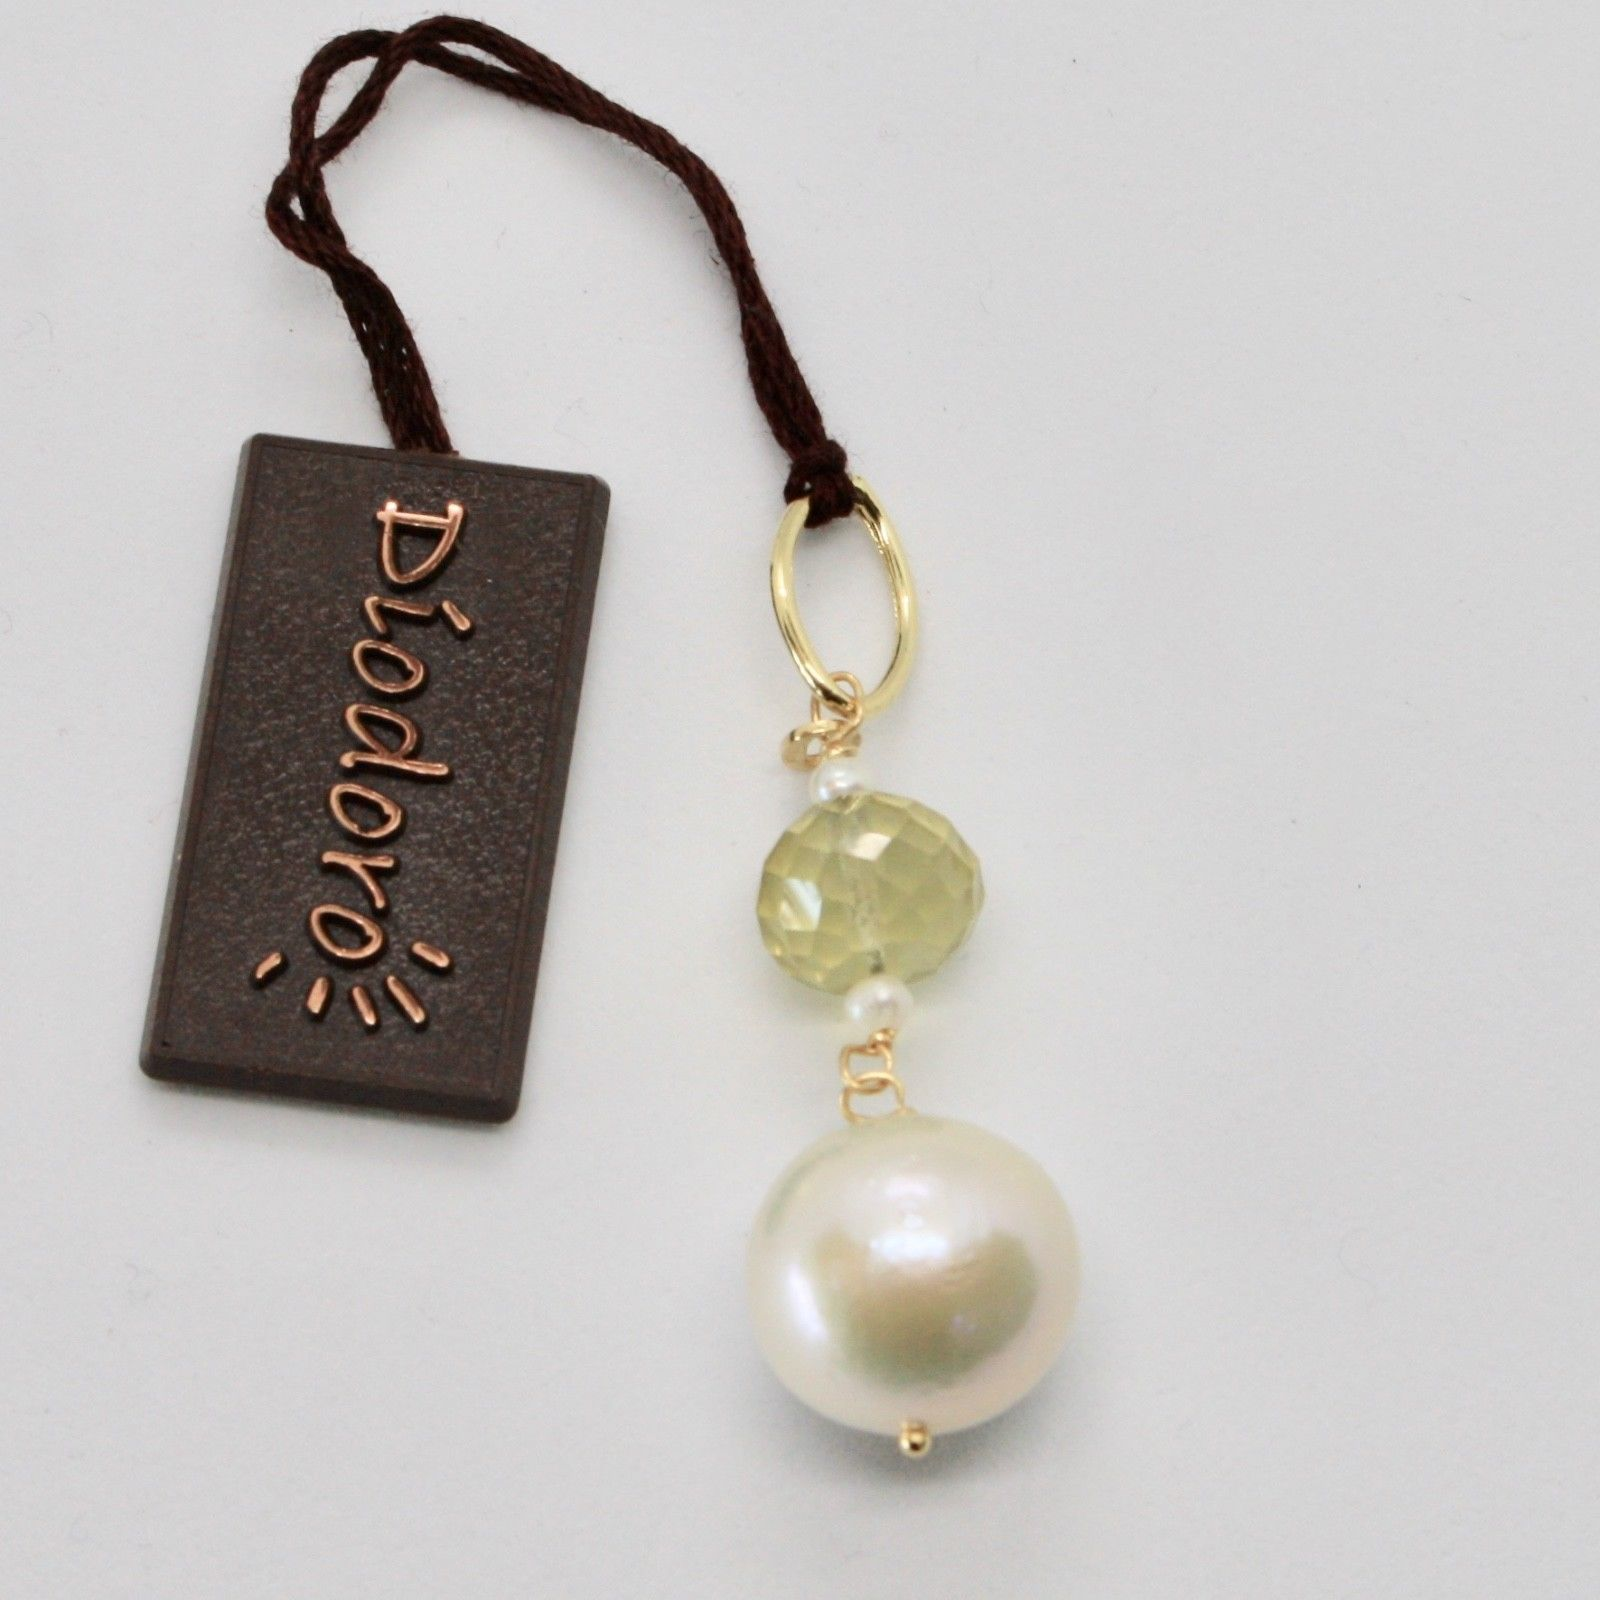 PENDANT YELLOW GOLD 18KT 750 WITH PEARL WHITE OF WATER DOLCE AND QUARTZ LEMON